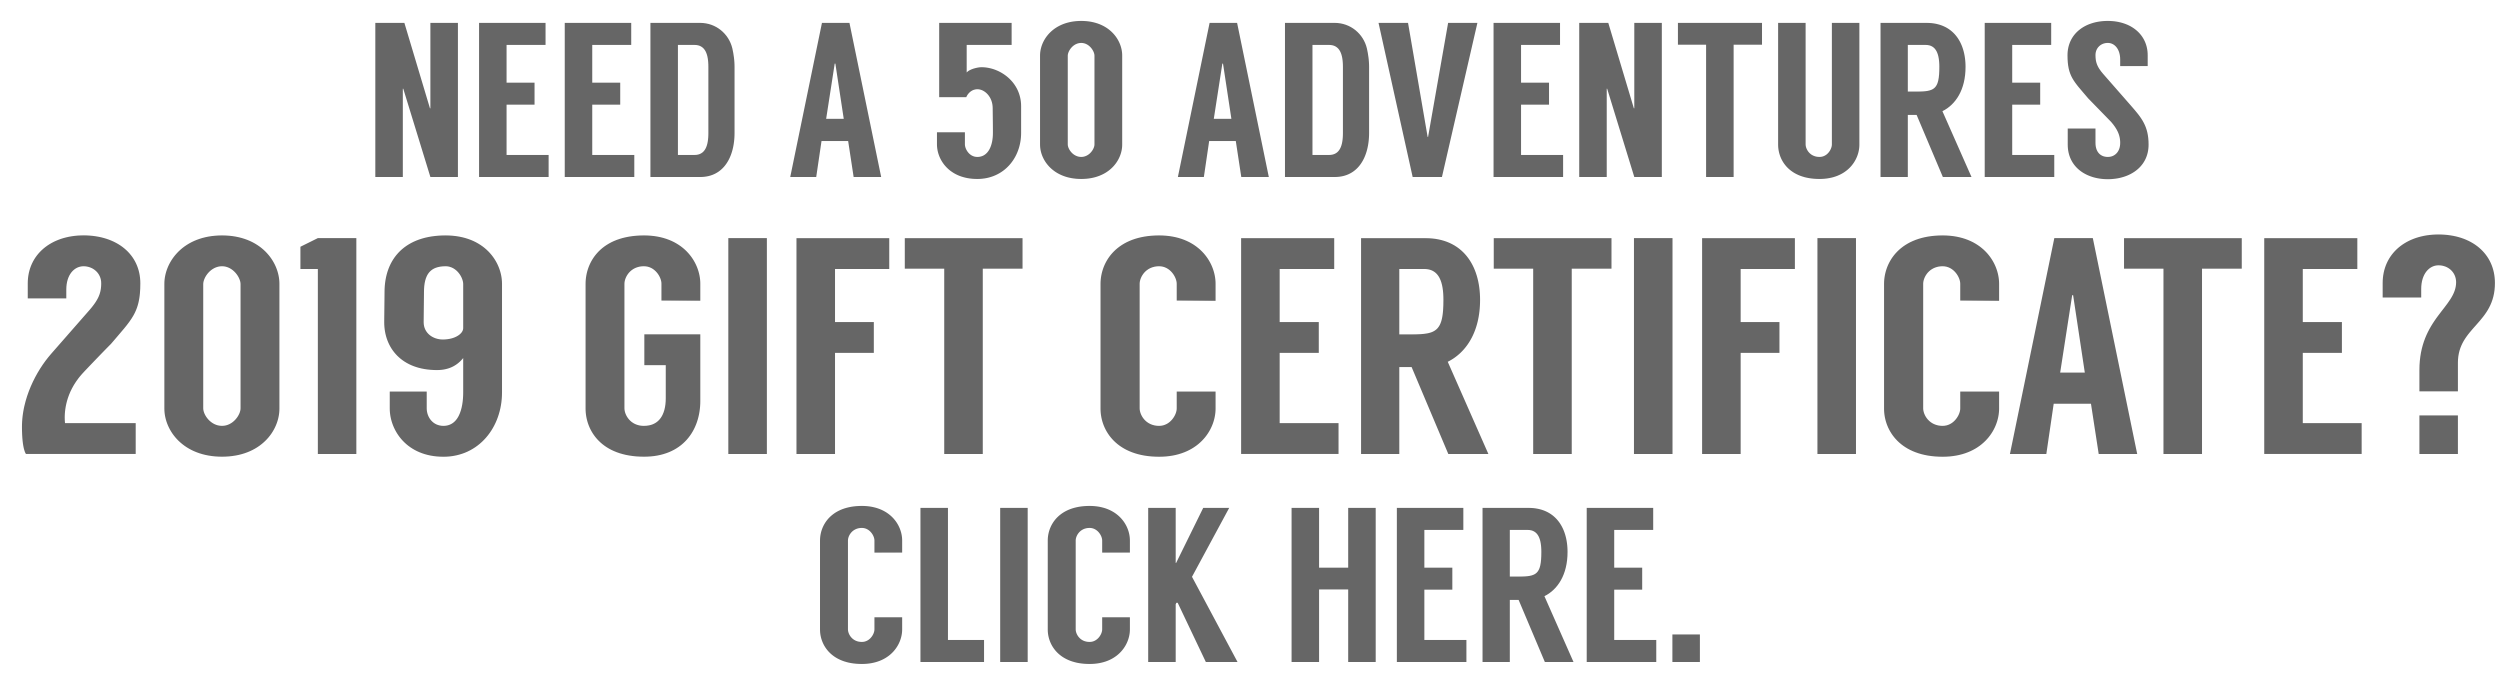 GiftCertificate.png